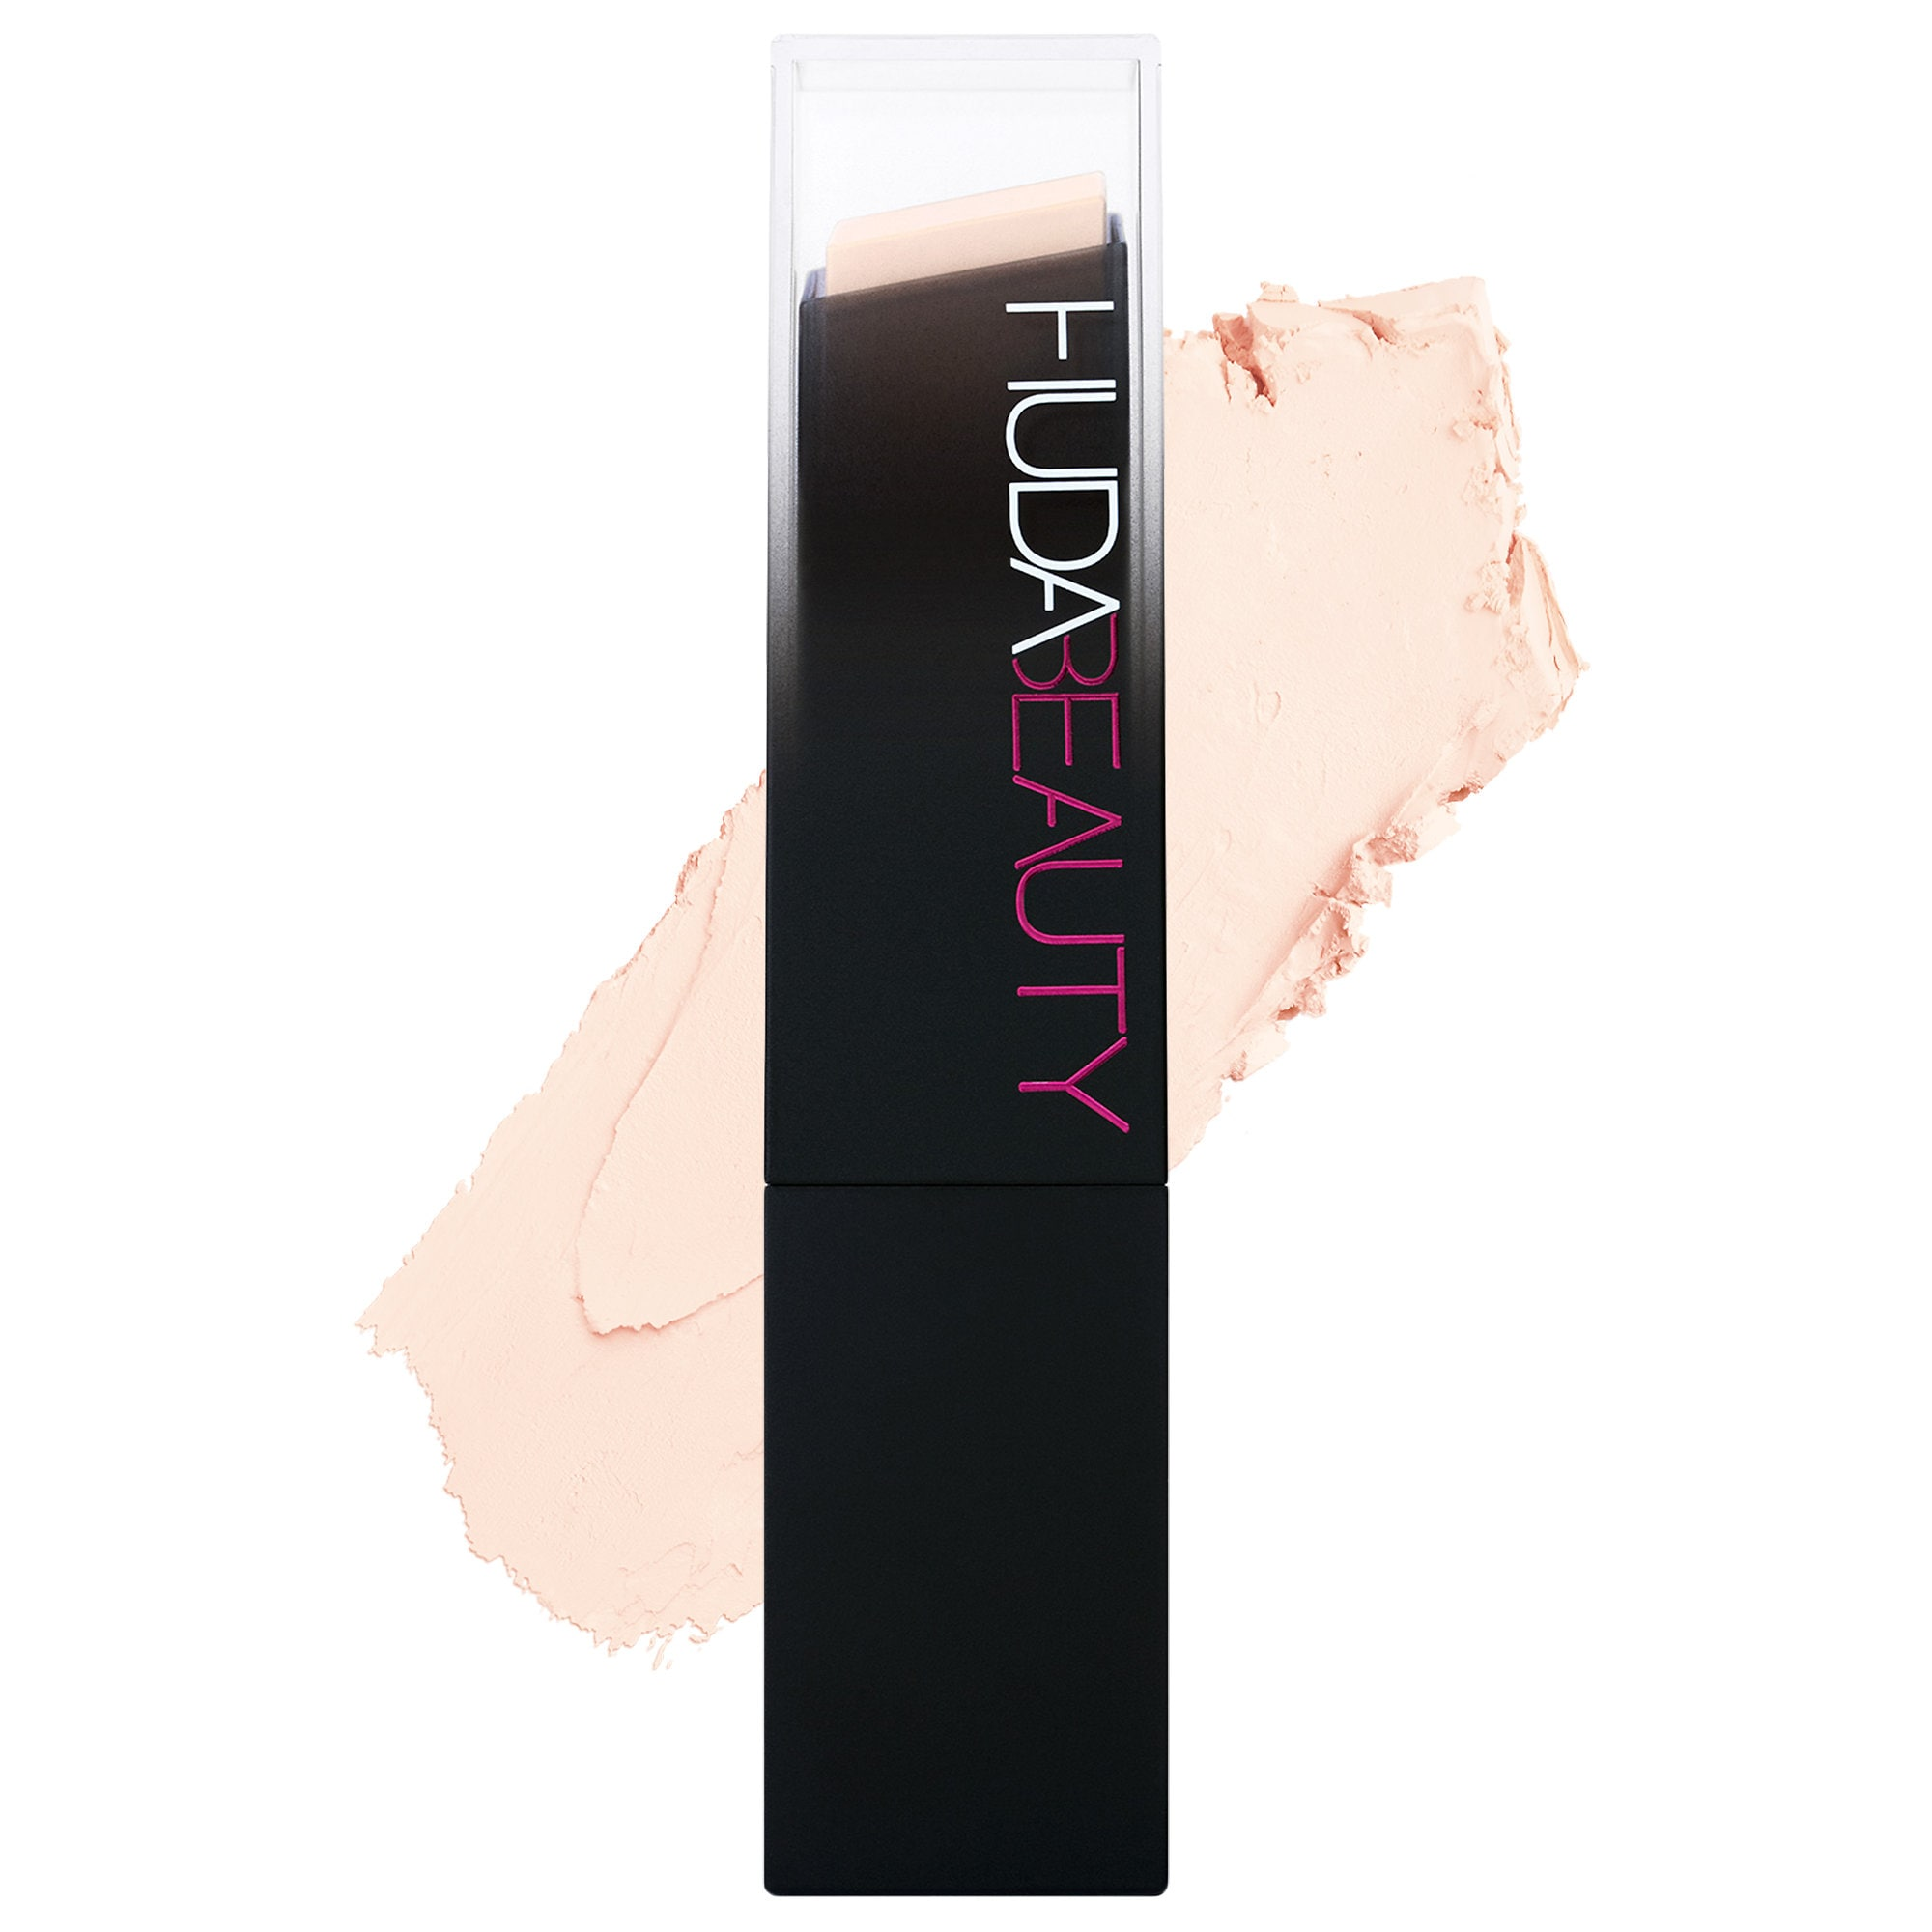 Huda Beauty - #FauxFilter Skin Finish Buildable Coverage Foundation Stick